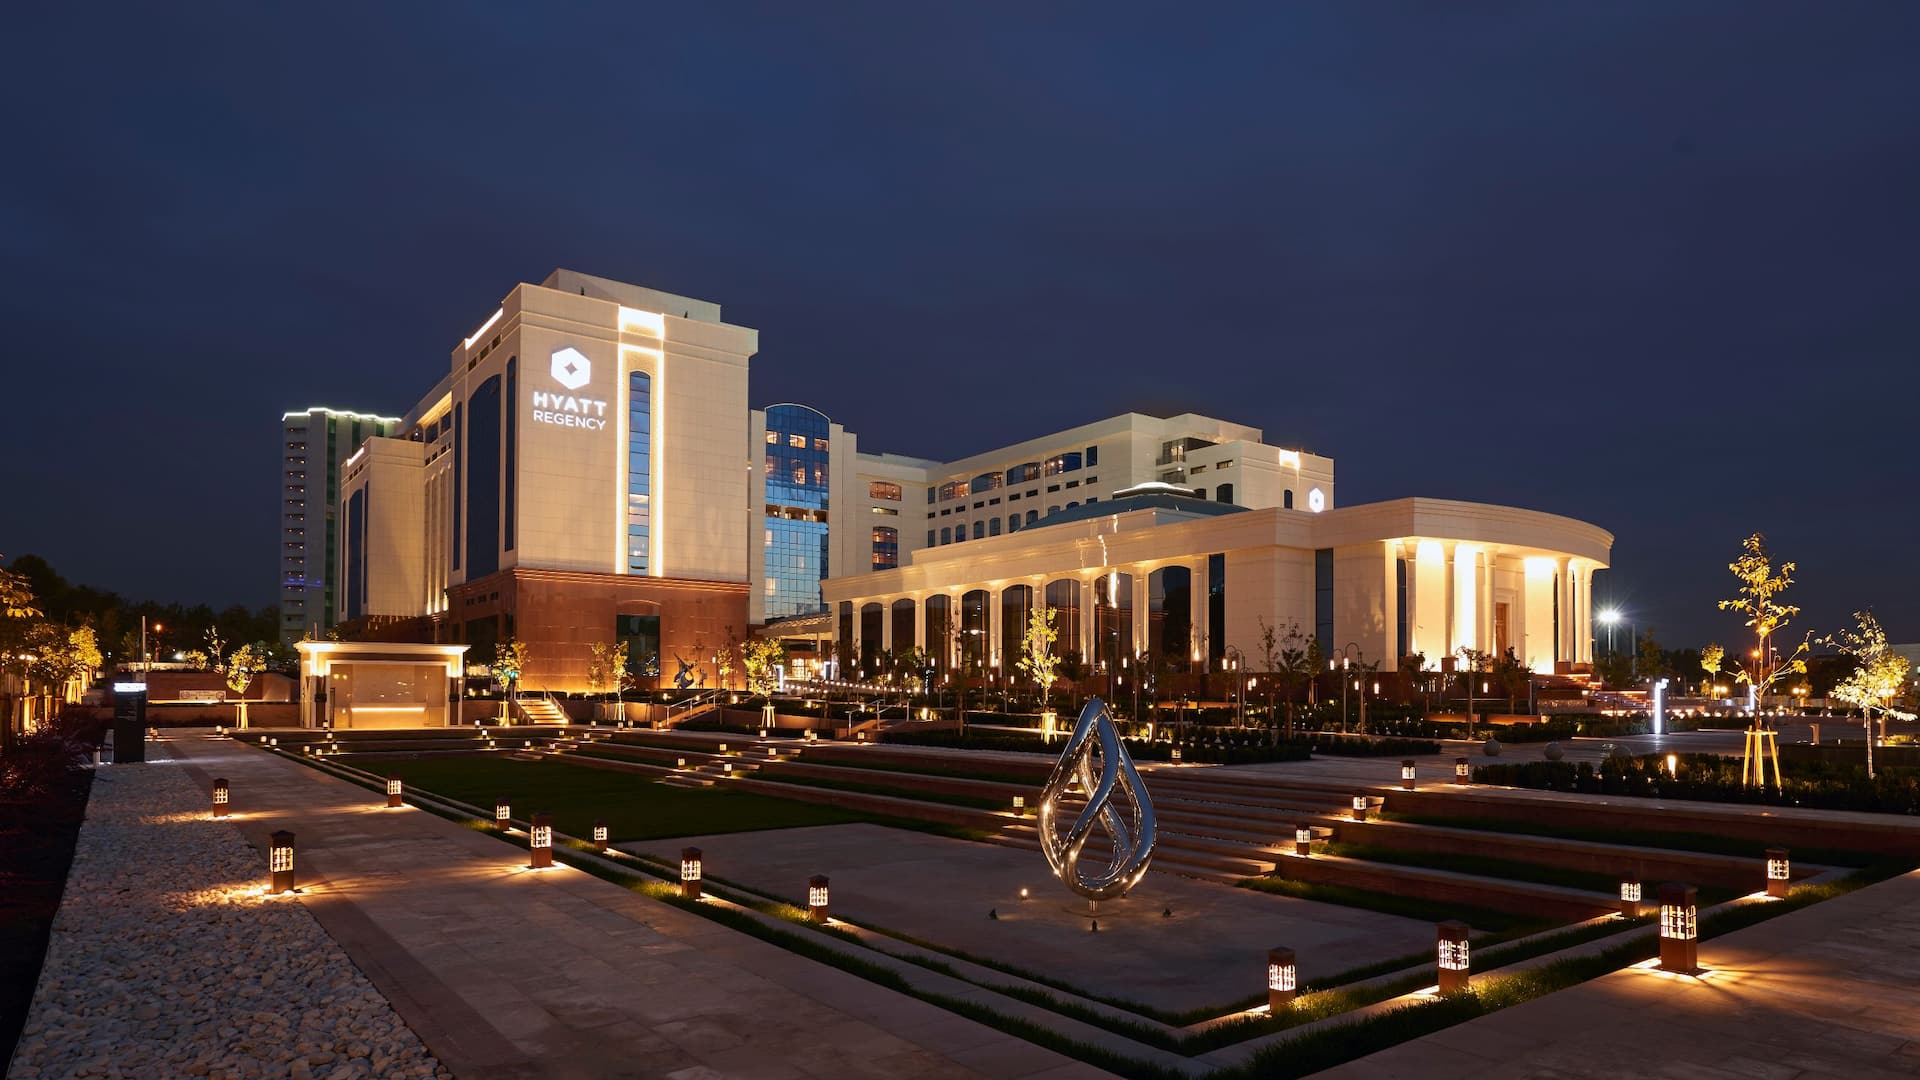 Exterior of Hyatt Regency Tashkent at night